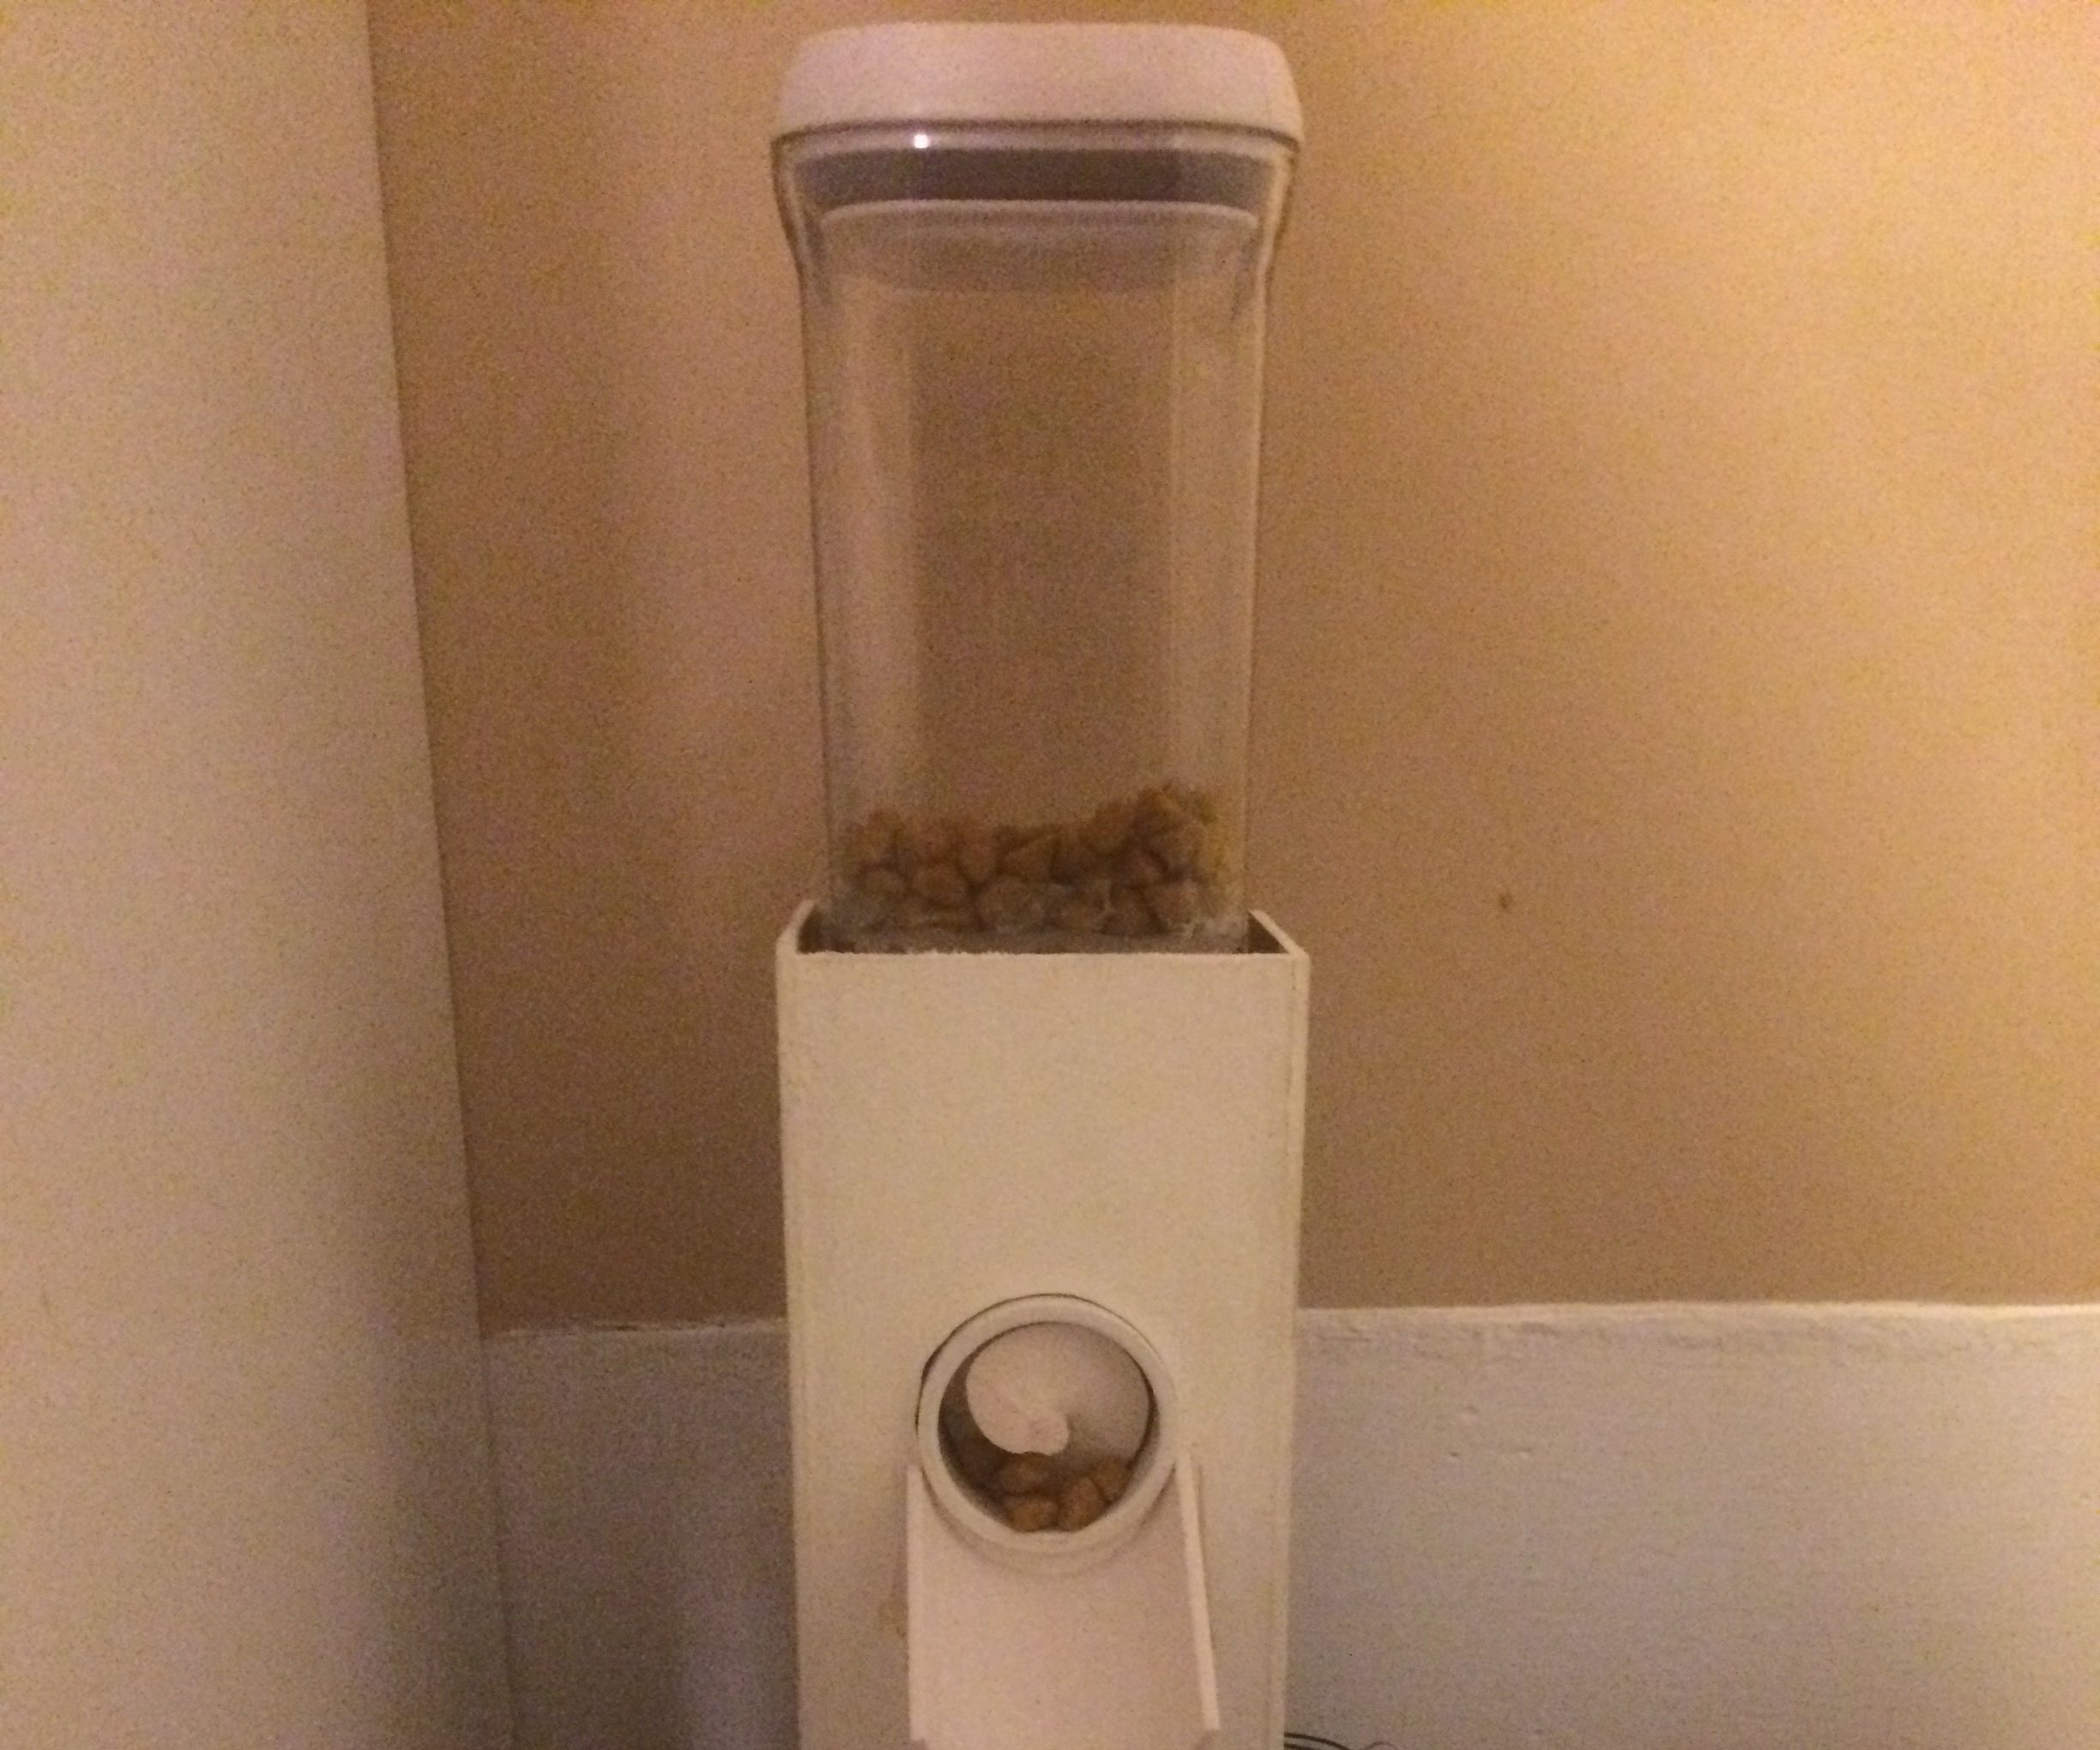 Automated / Voice Activated Cat Feeder